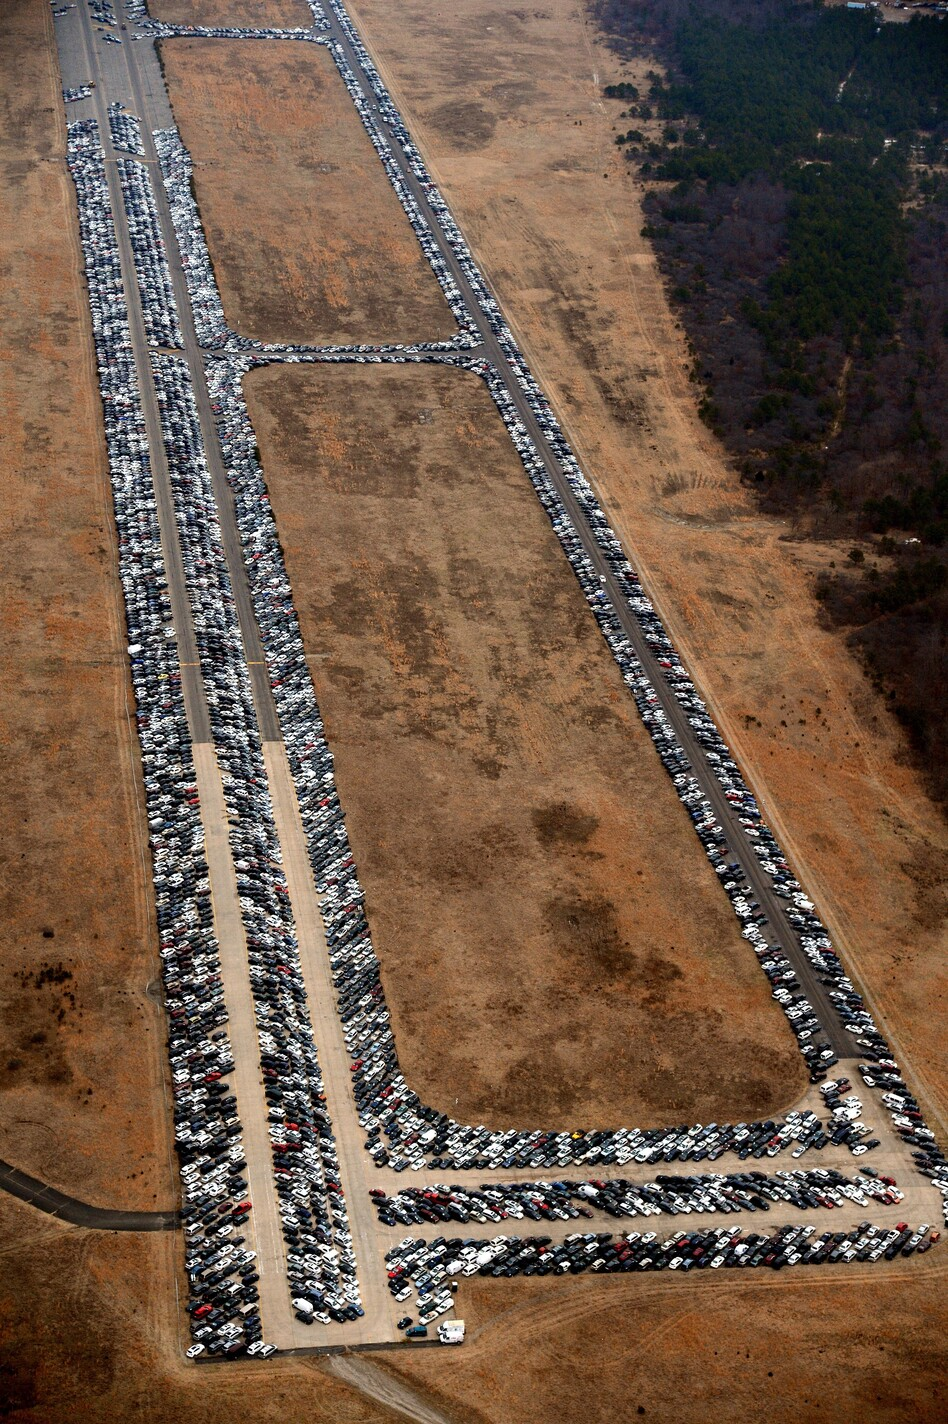 Cars line the runway and taxiways at Calverton Executive Airpark in Calverton, N.Y., on Jan. 9.